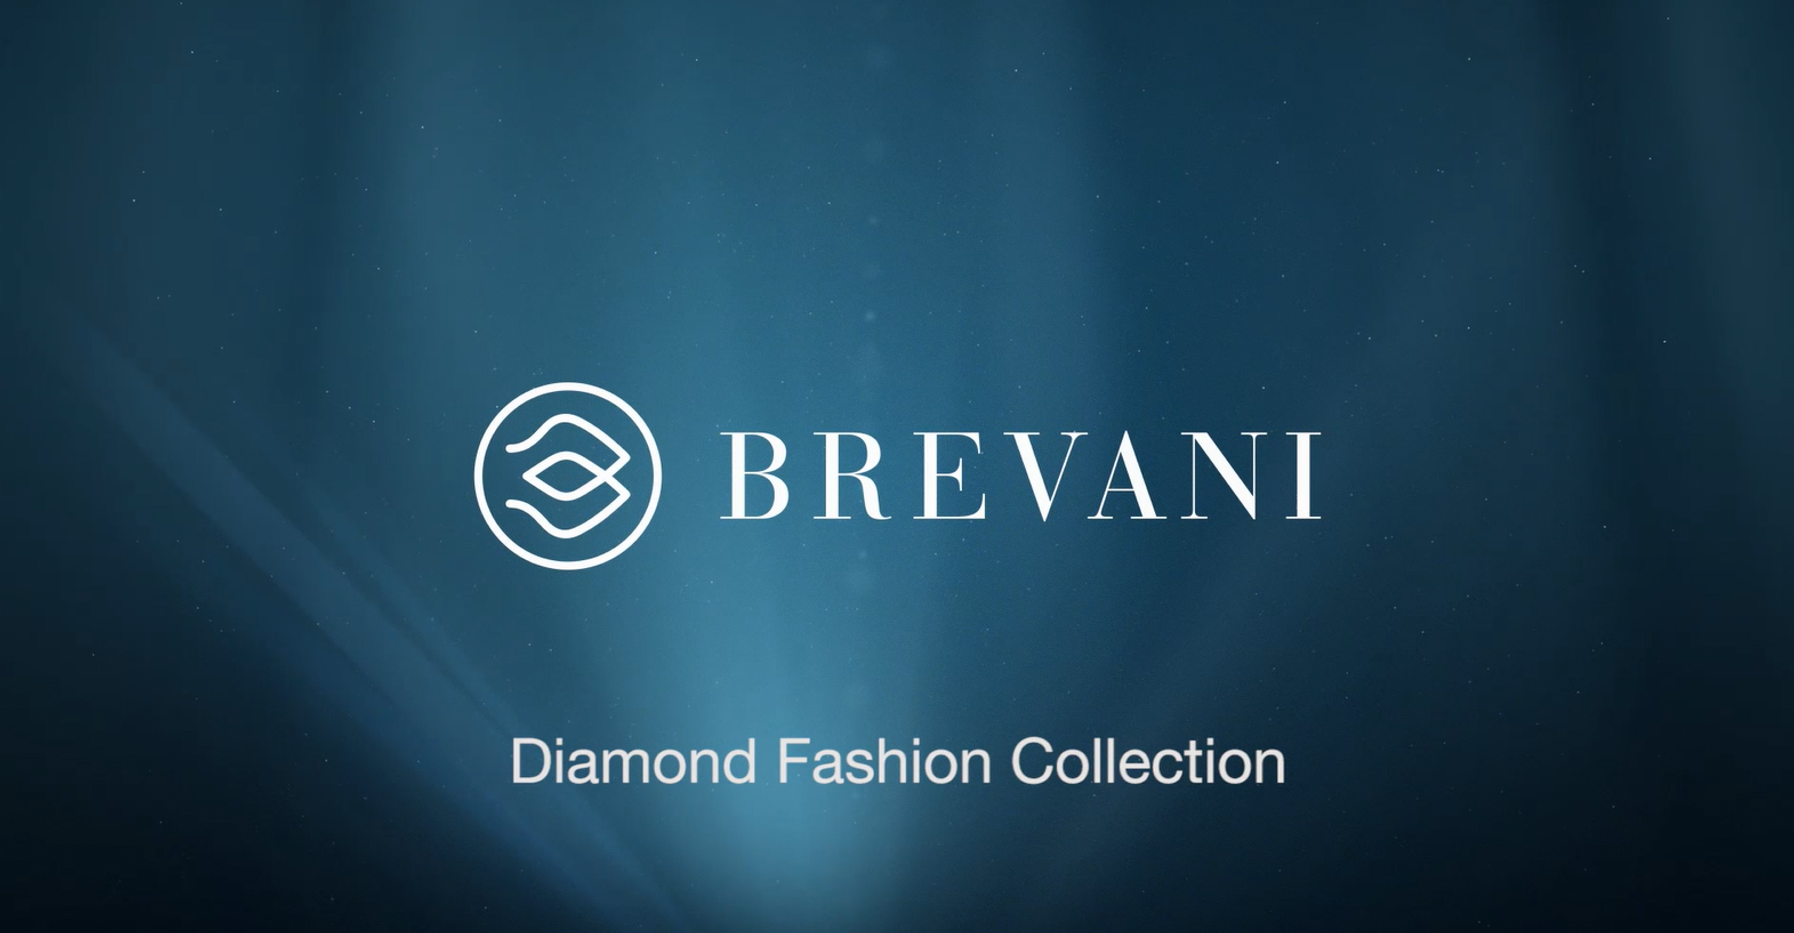 Brevani-Dia-Fashion-Collection.mp4